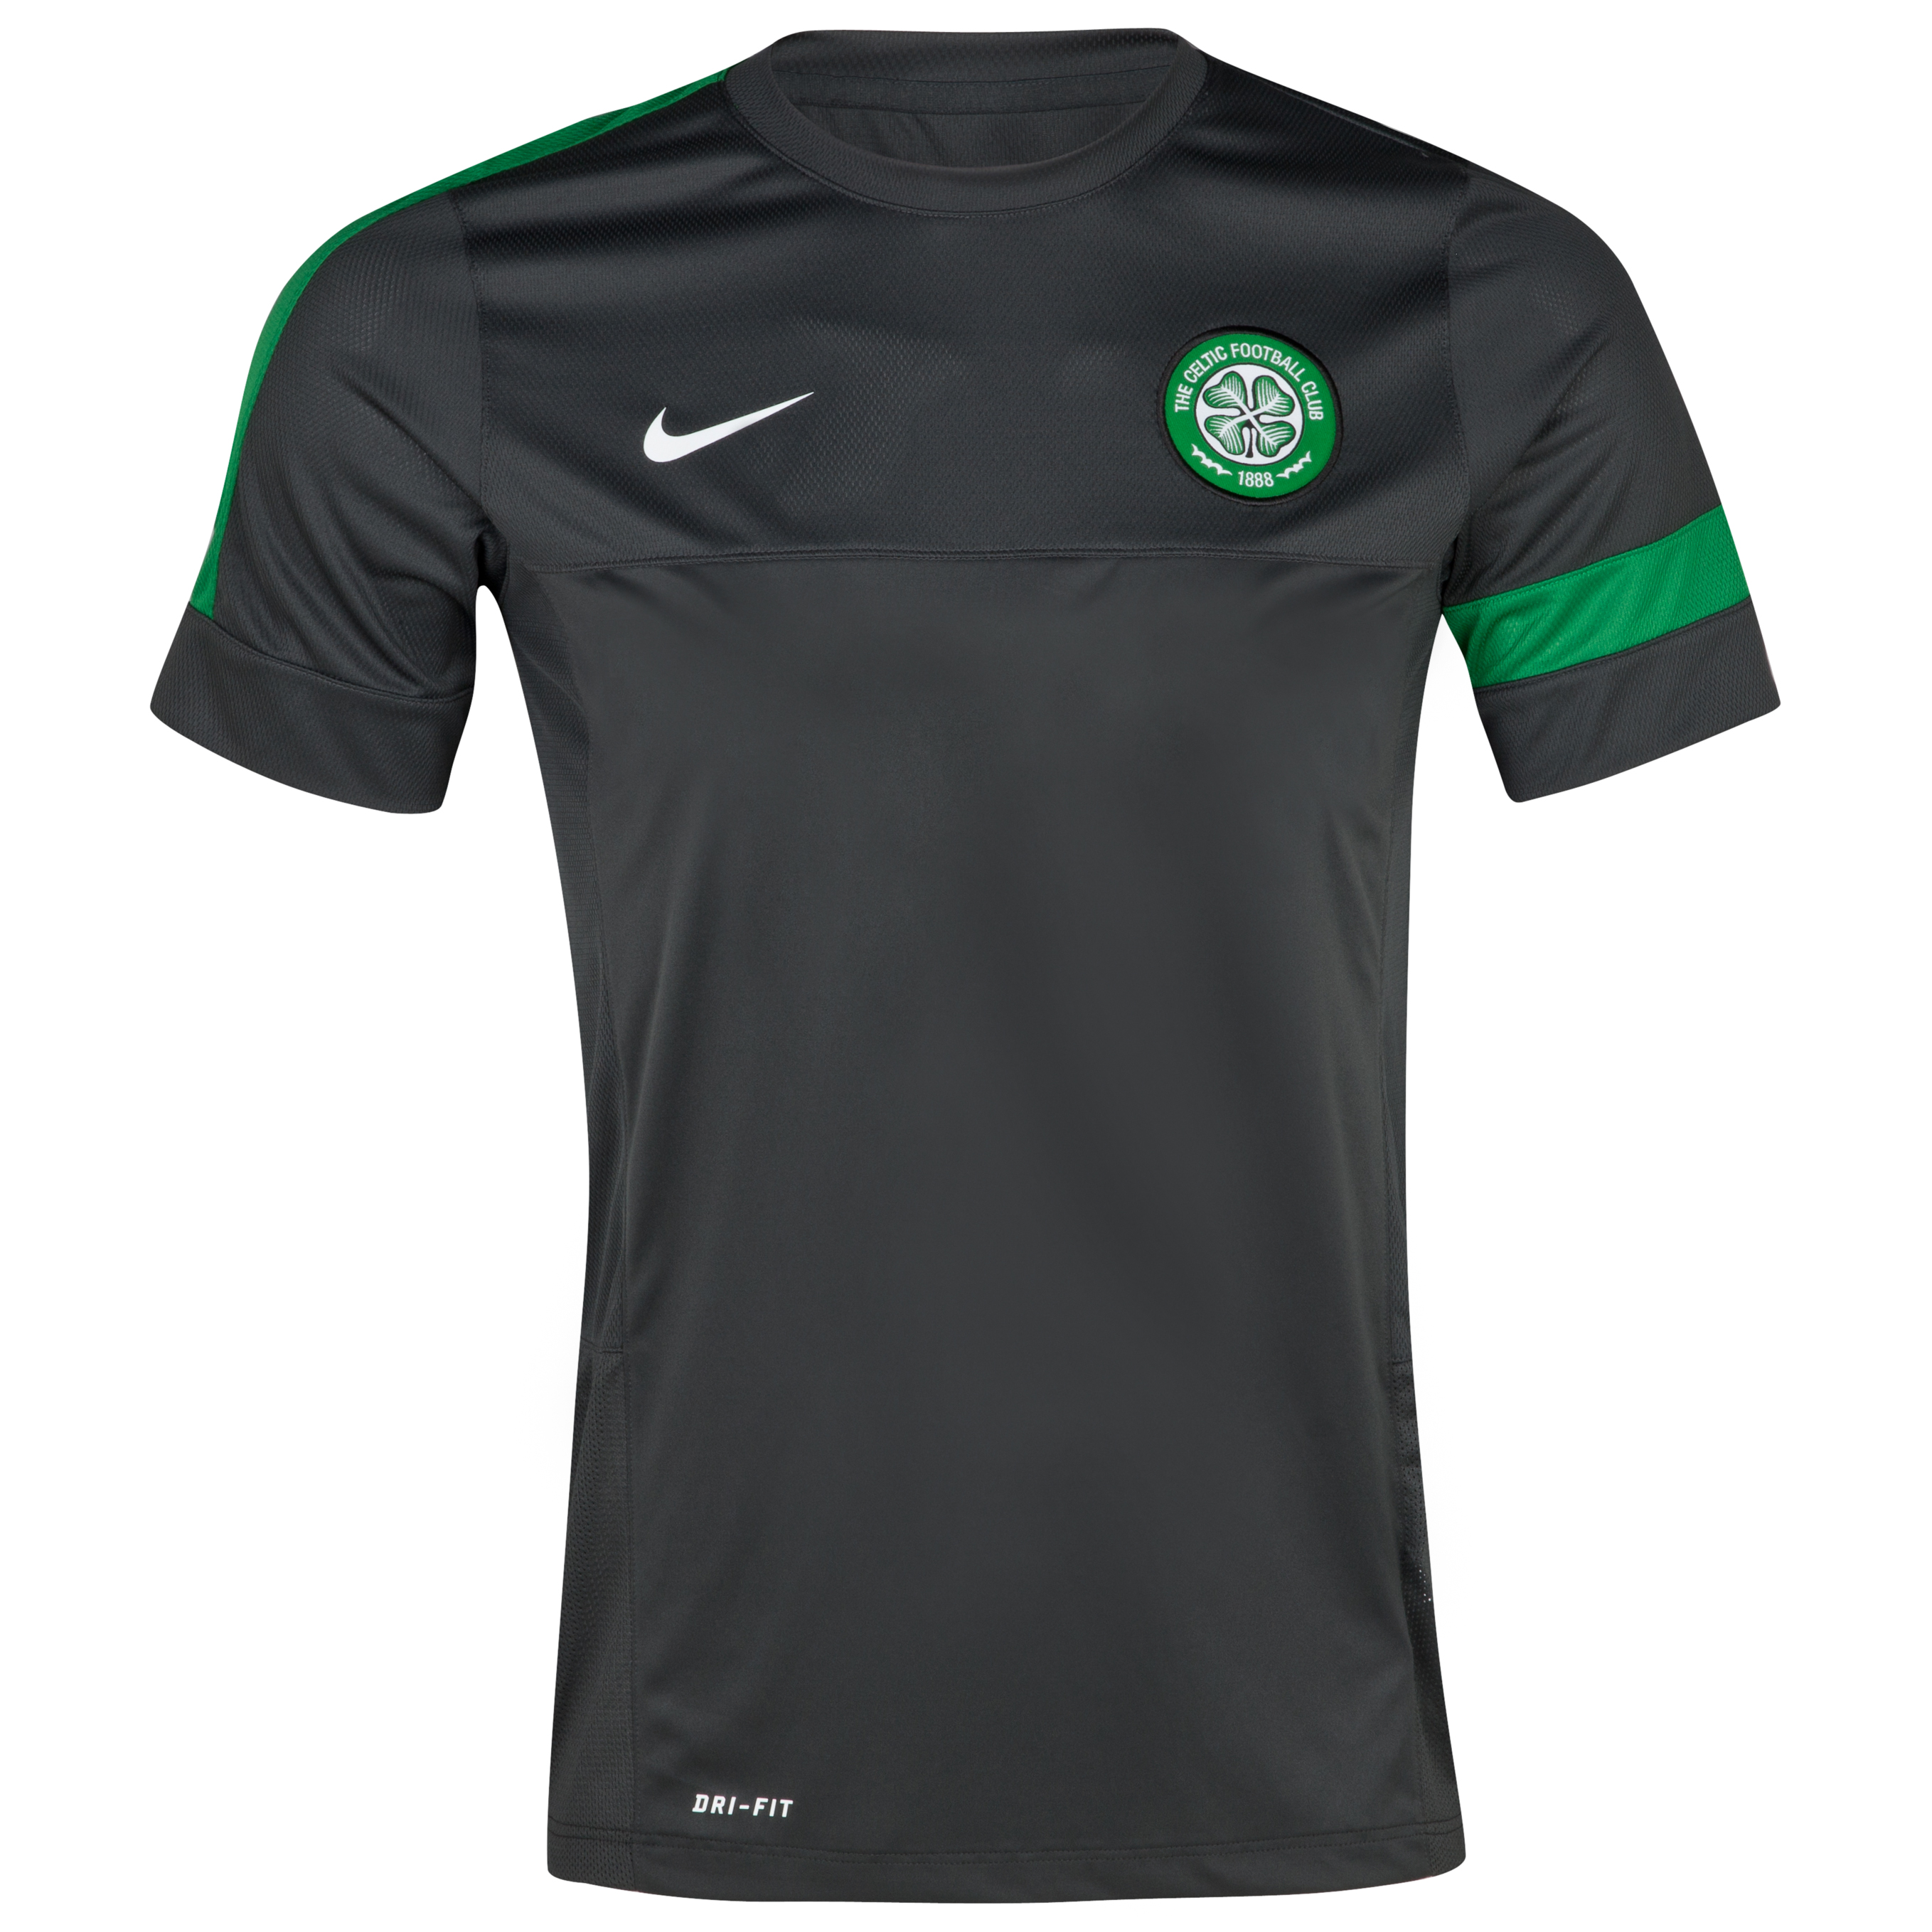 Celtic Short Sleeve Training Top 1 - Anthracite/Anthracite/White - Kids